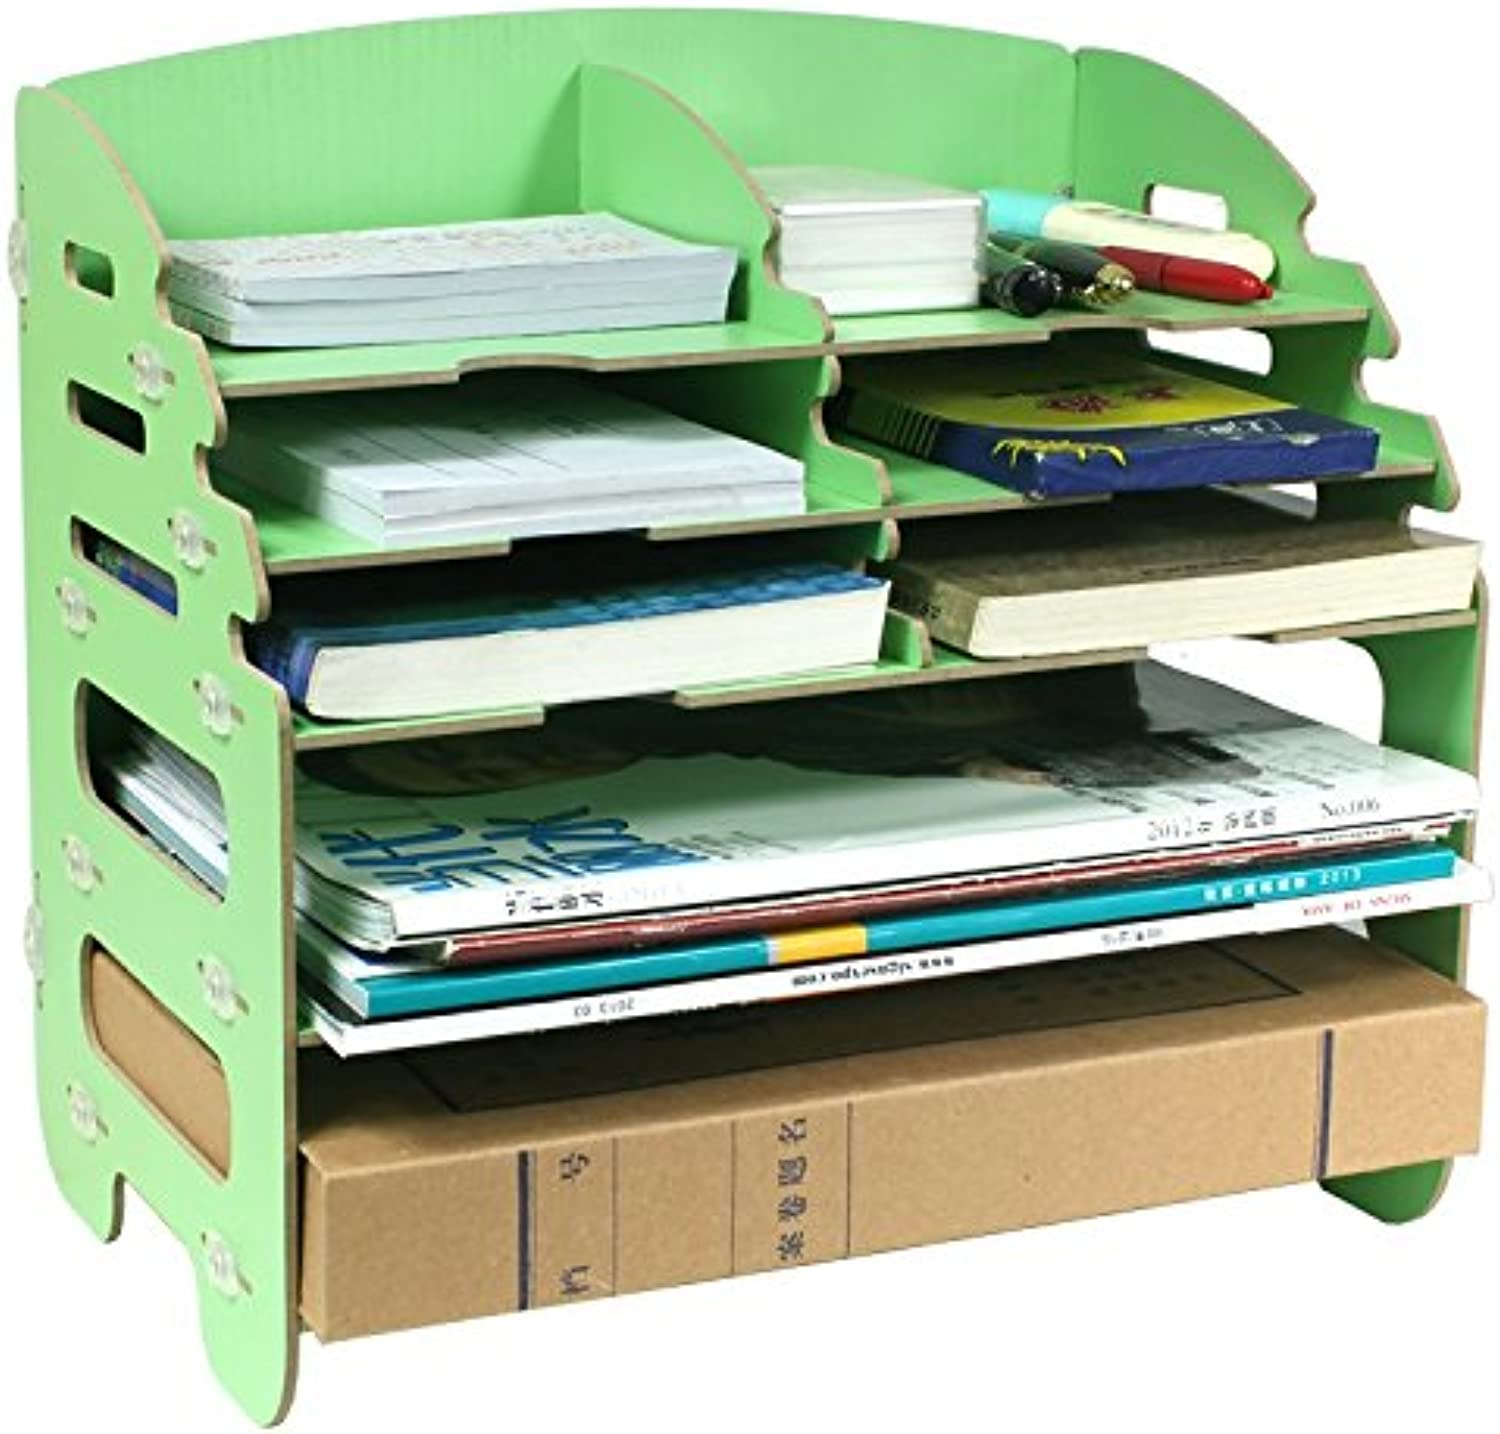 Shelf Desktop Office Finishing Basket Document Binding Frame Stepped Data Box A4 Paper Storage Box (color   Green)